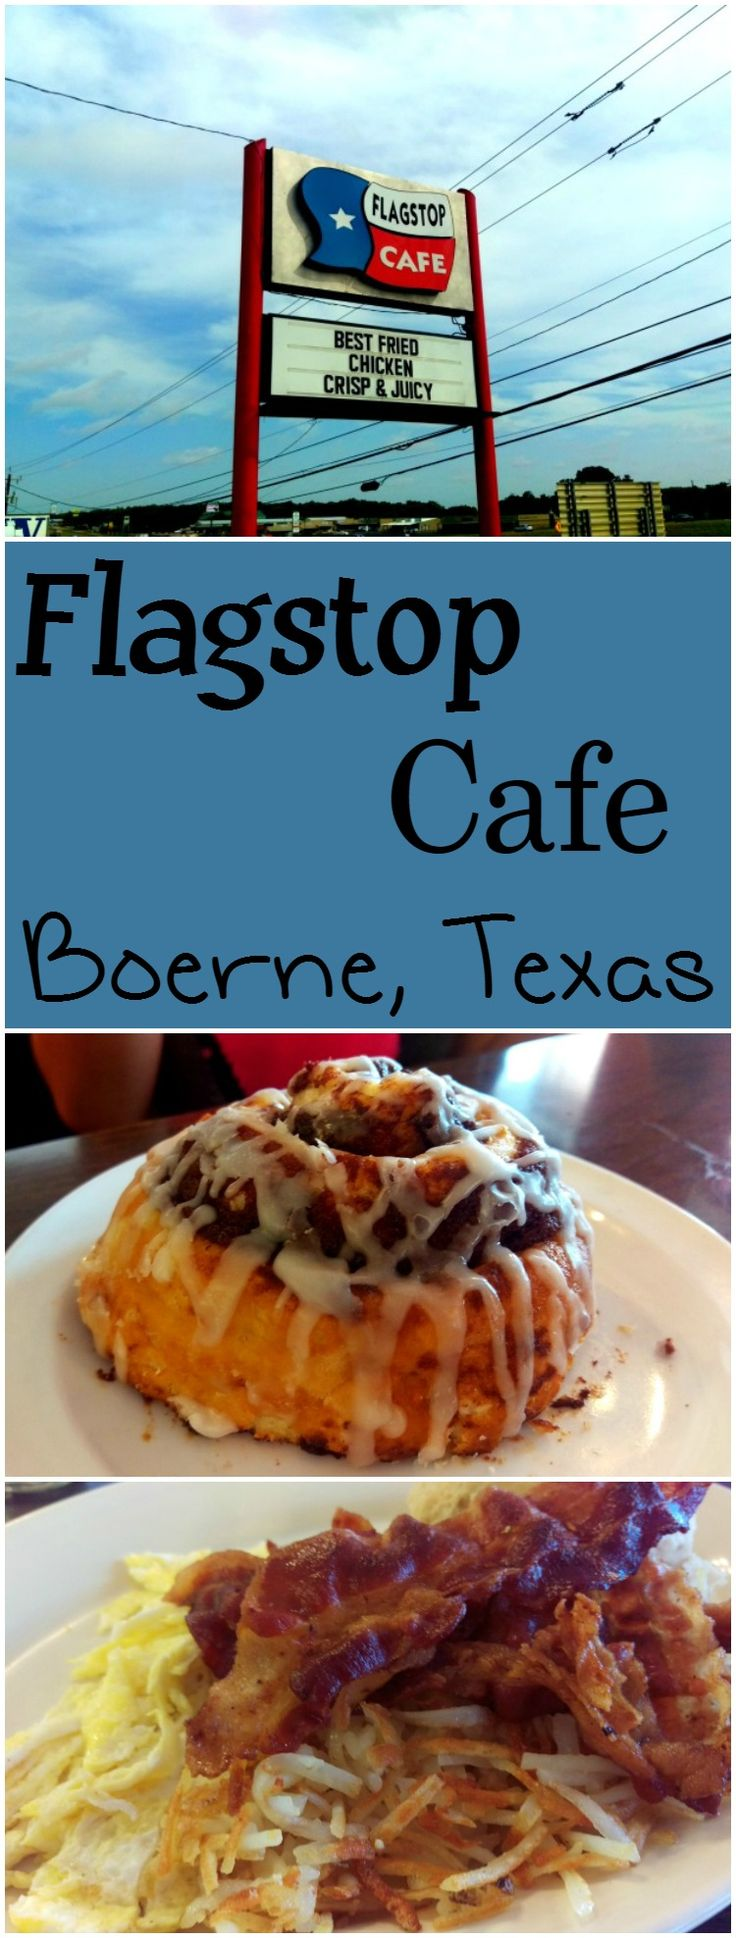 Flagstop Cafe Located in Boerne Texas Serves Amazing Breakfast